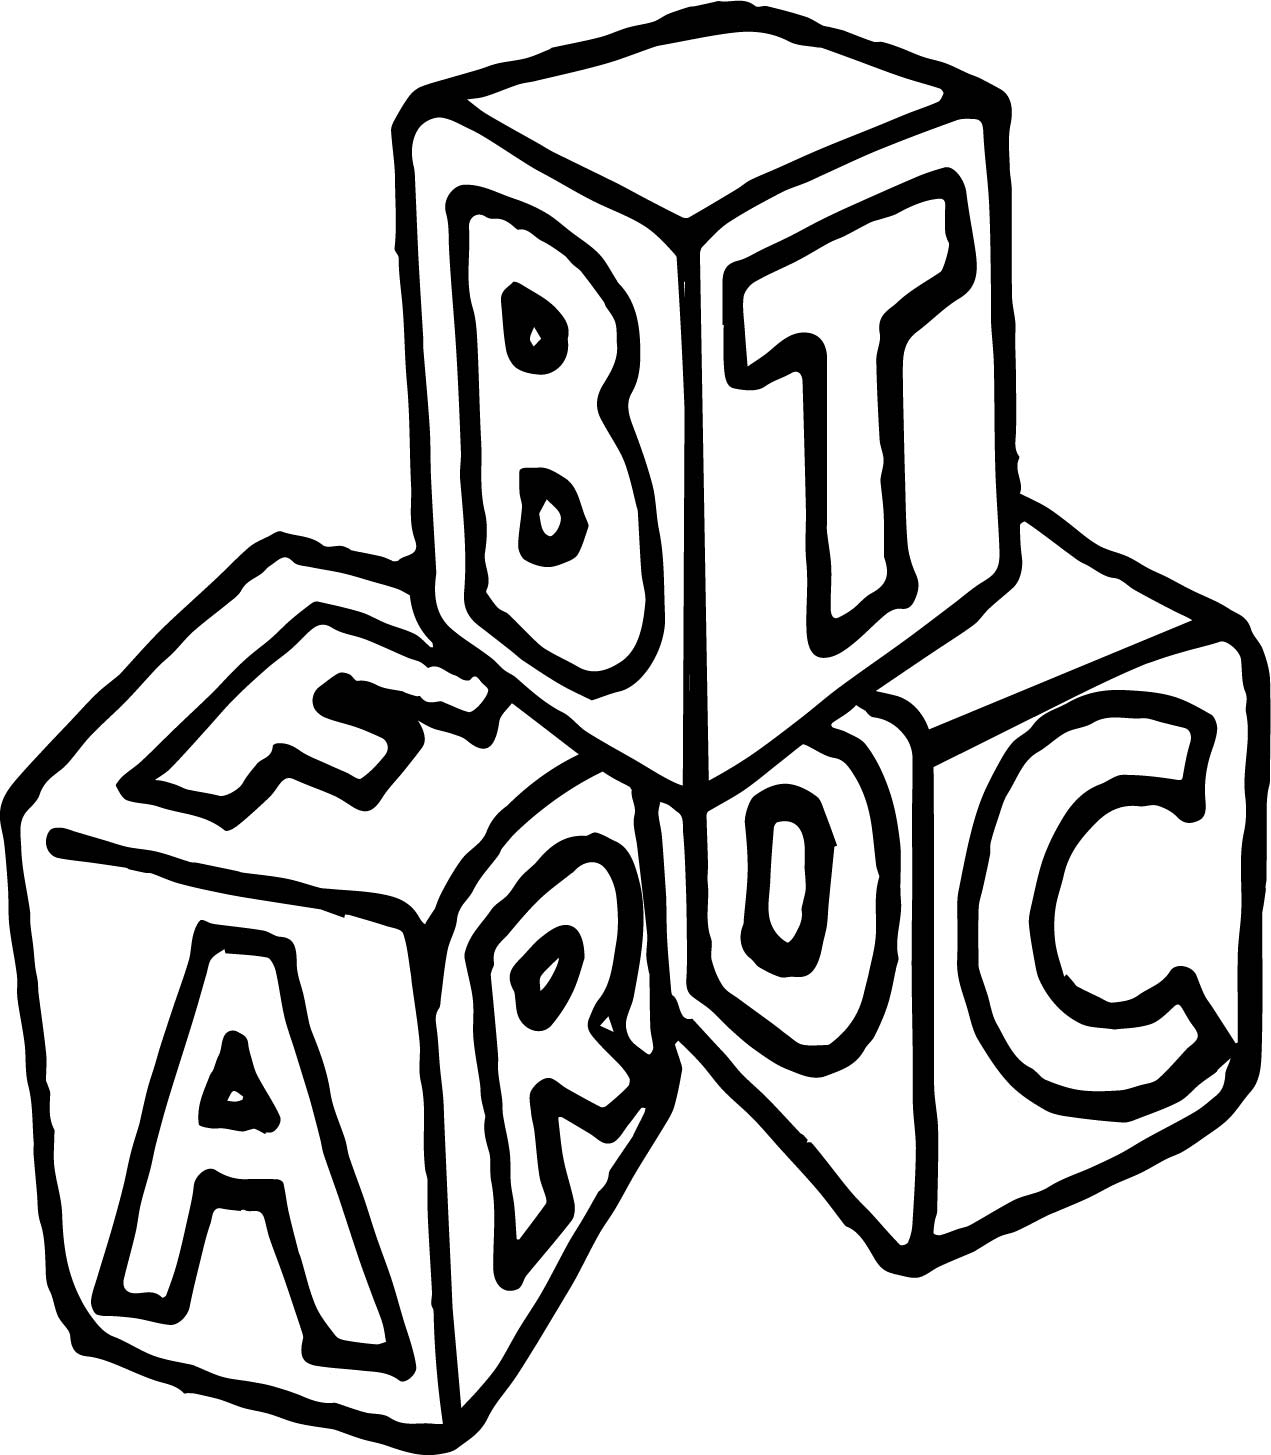 a b c coloring pages a fro ant on learning abc coloring page coloring sky c coloring b a pages